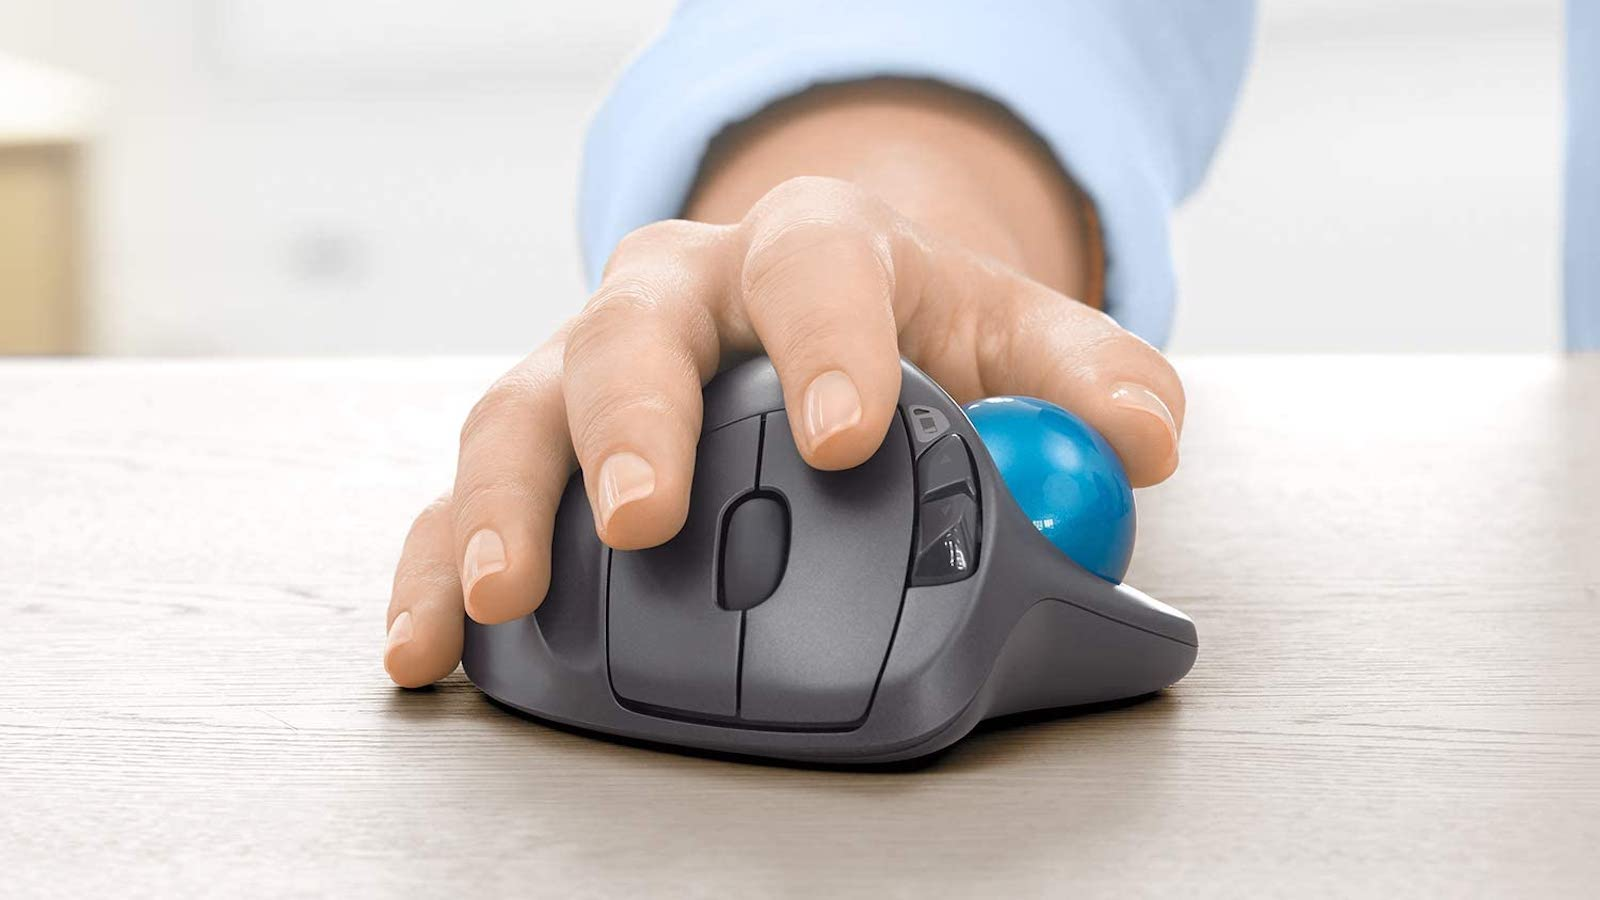 Logitech M570 Wireless Trackball Mouse is sculpted for your hand's comfort